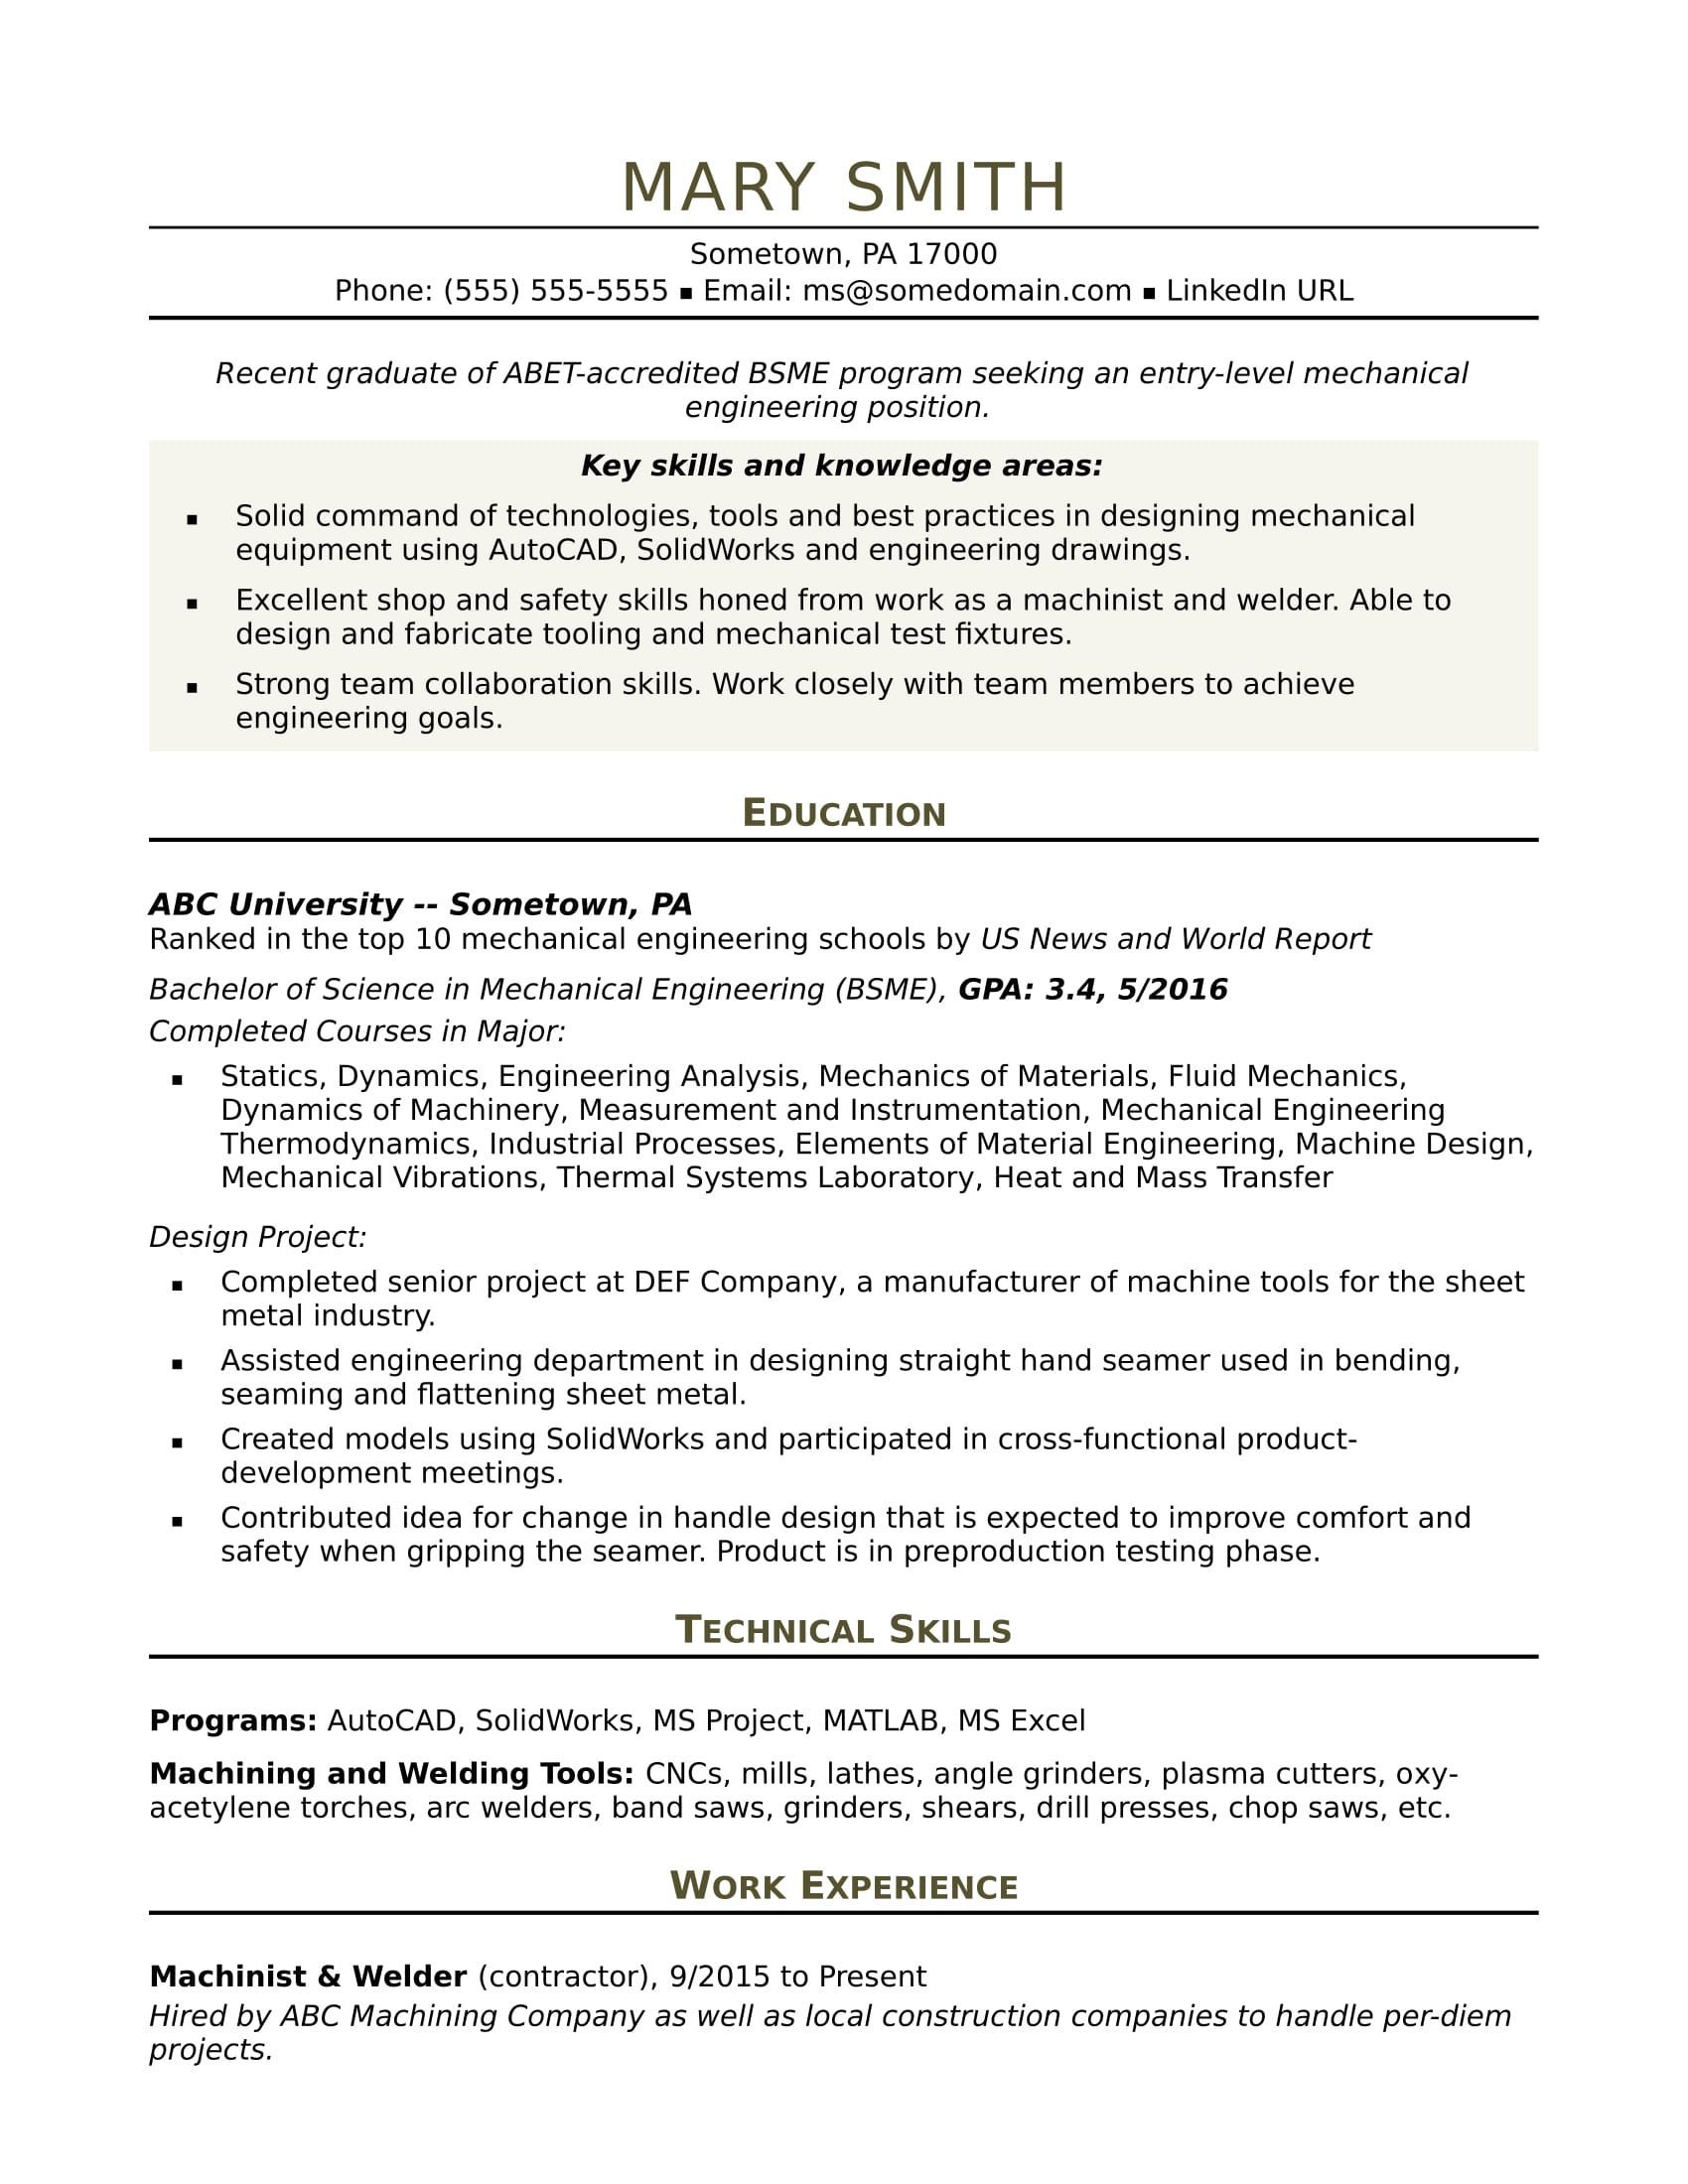 sample resume for an entry level mechanical engineer engineering templates rf different Resume Entry Level Rf Engineer Resume Sample